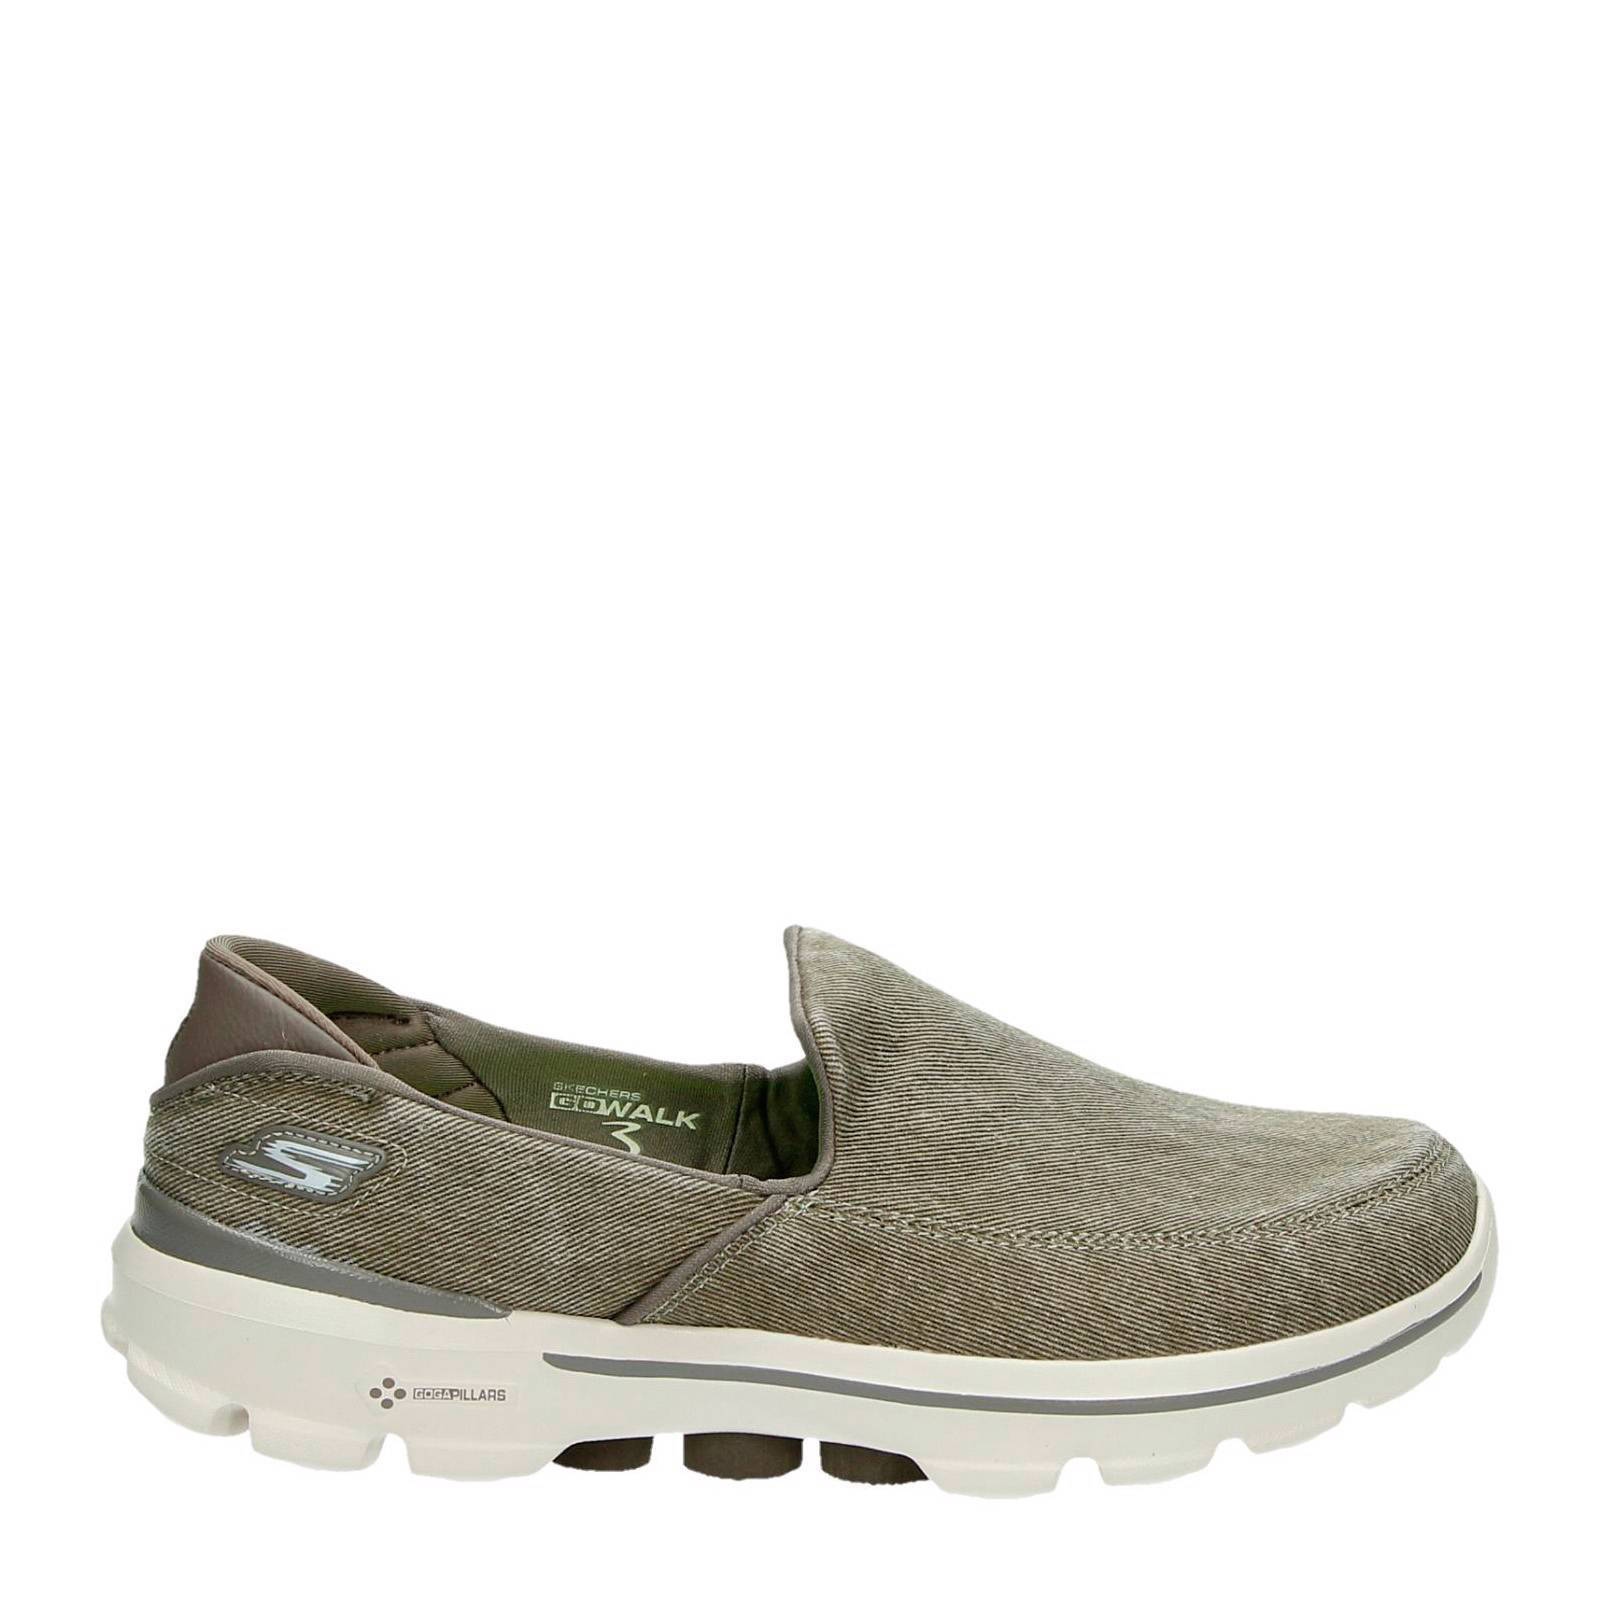 60aec3d6bc47 Skechers instappers